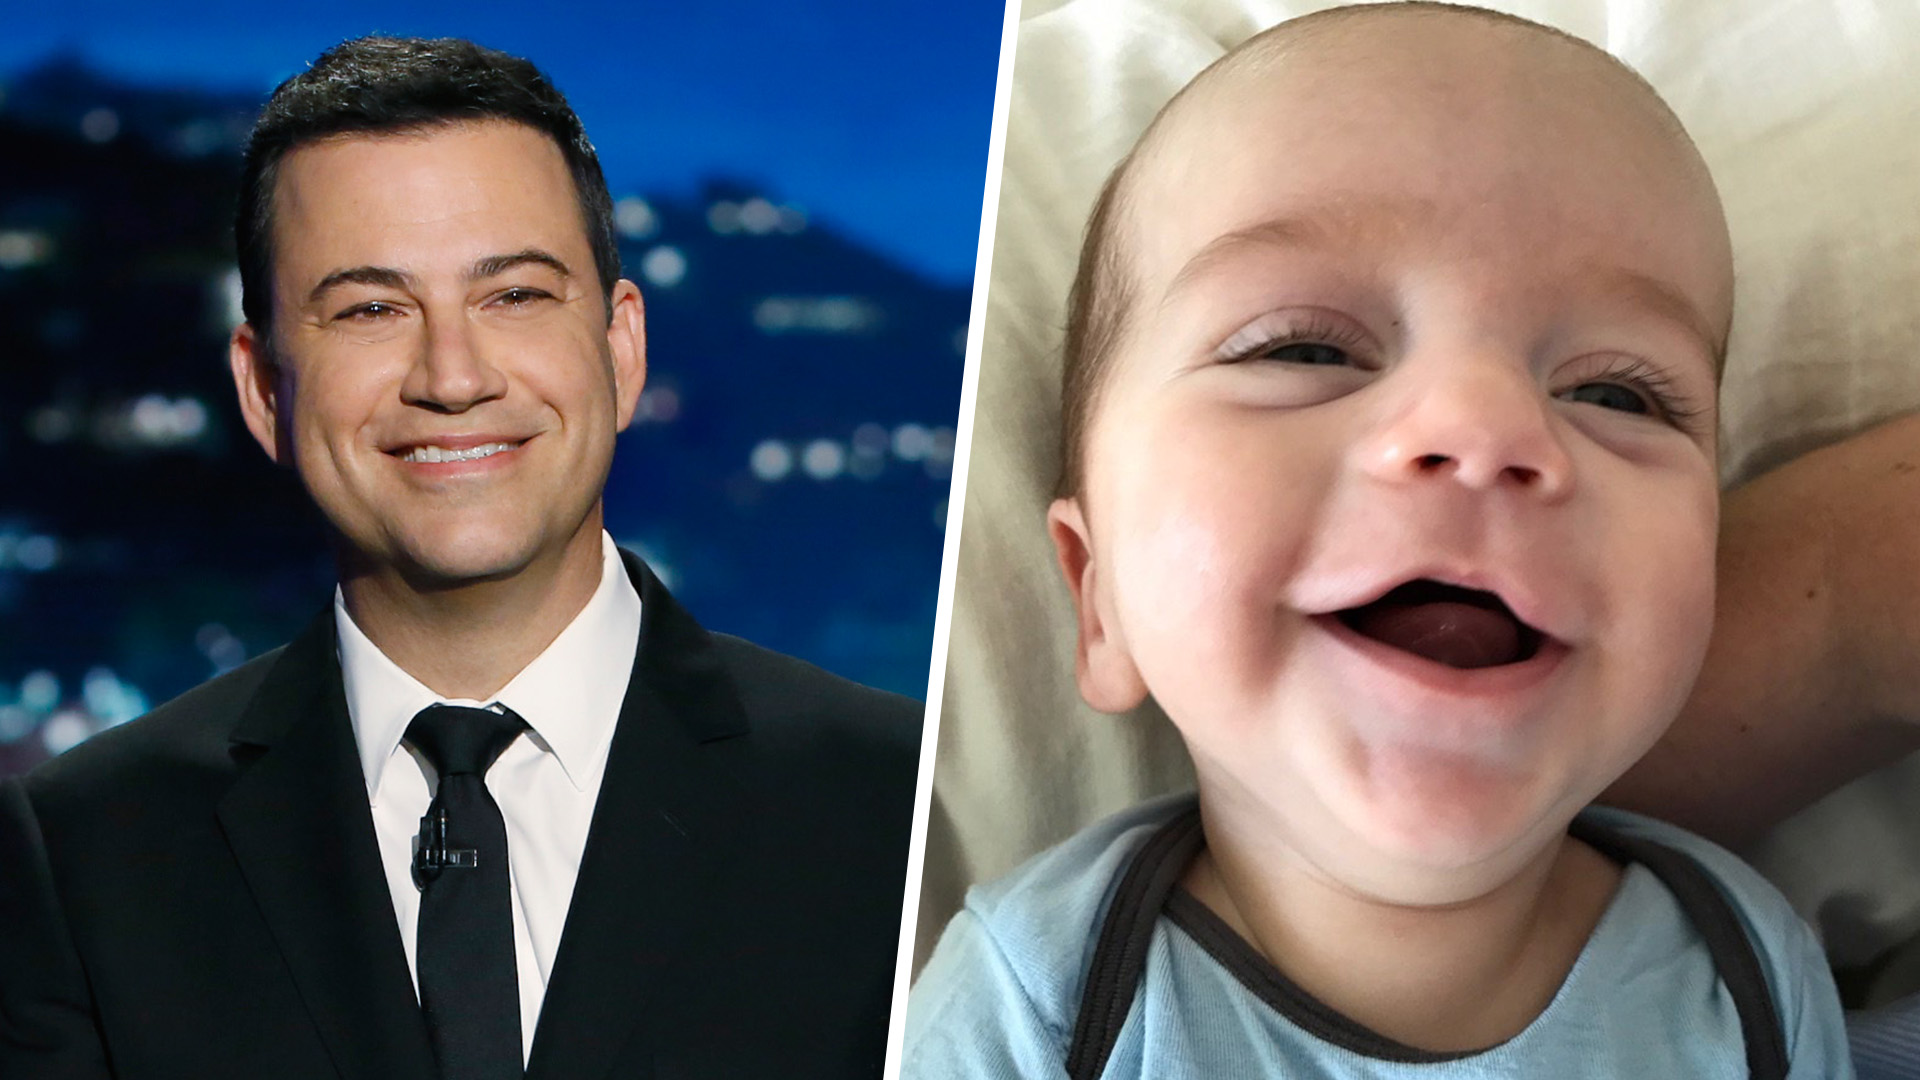 'Doing Great': Jimmy Kimmel Posts Update On Son With ...